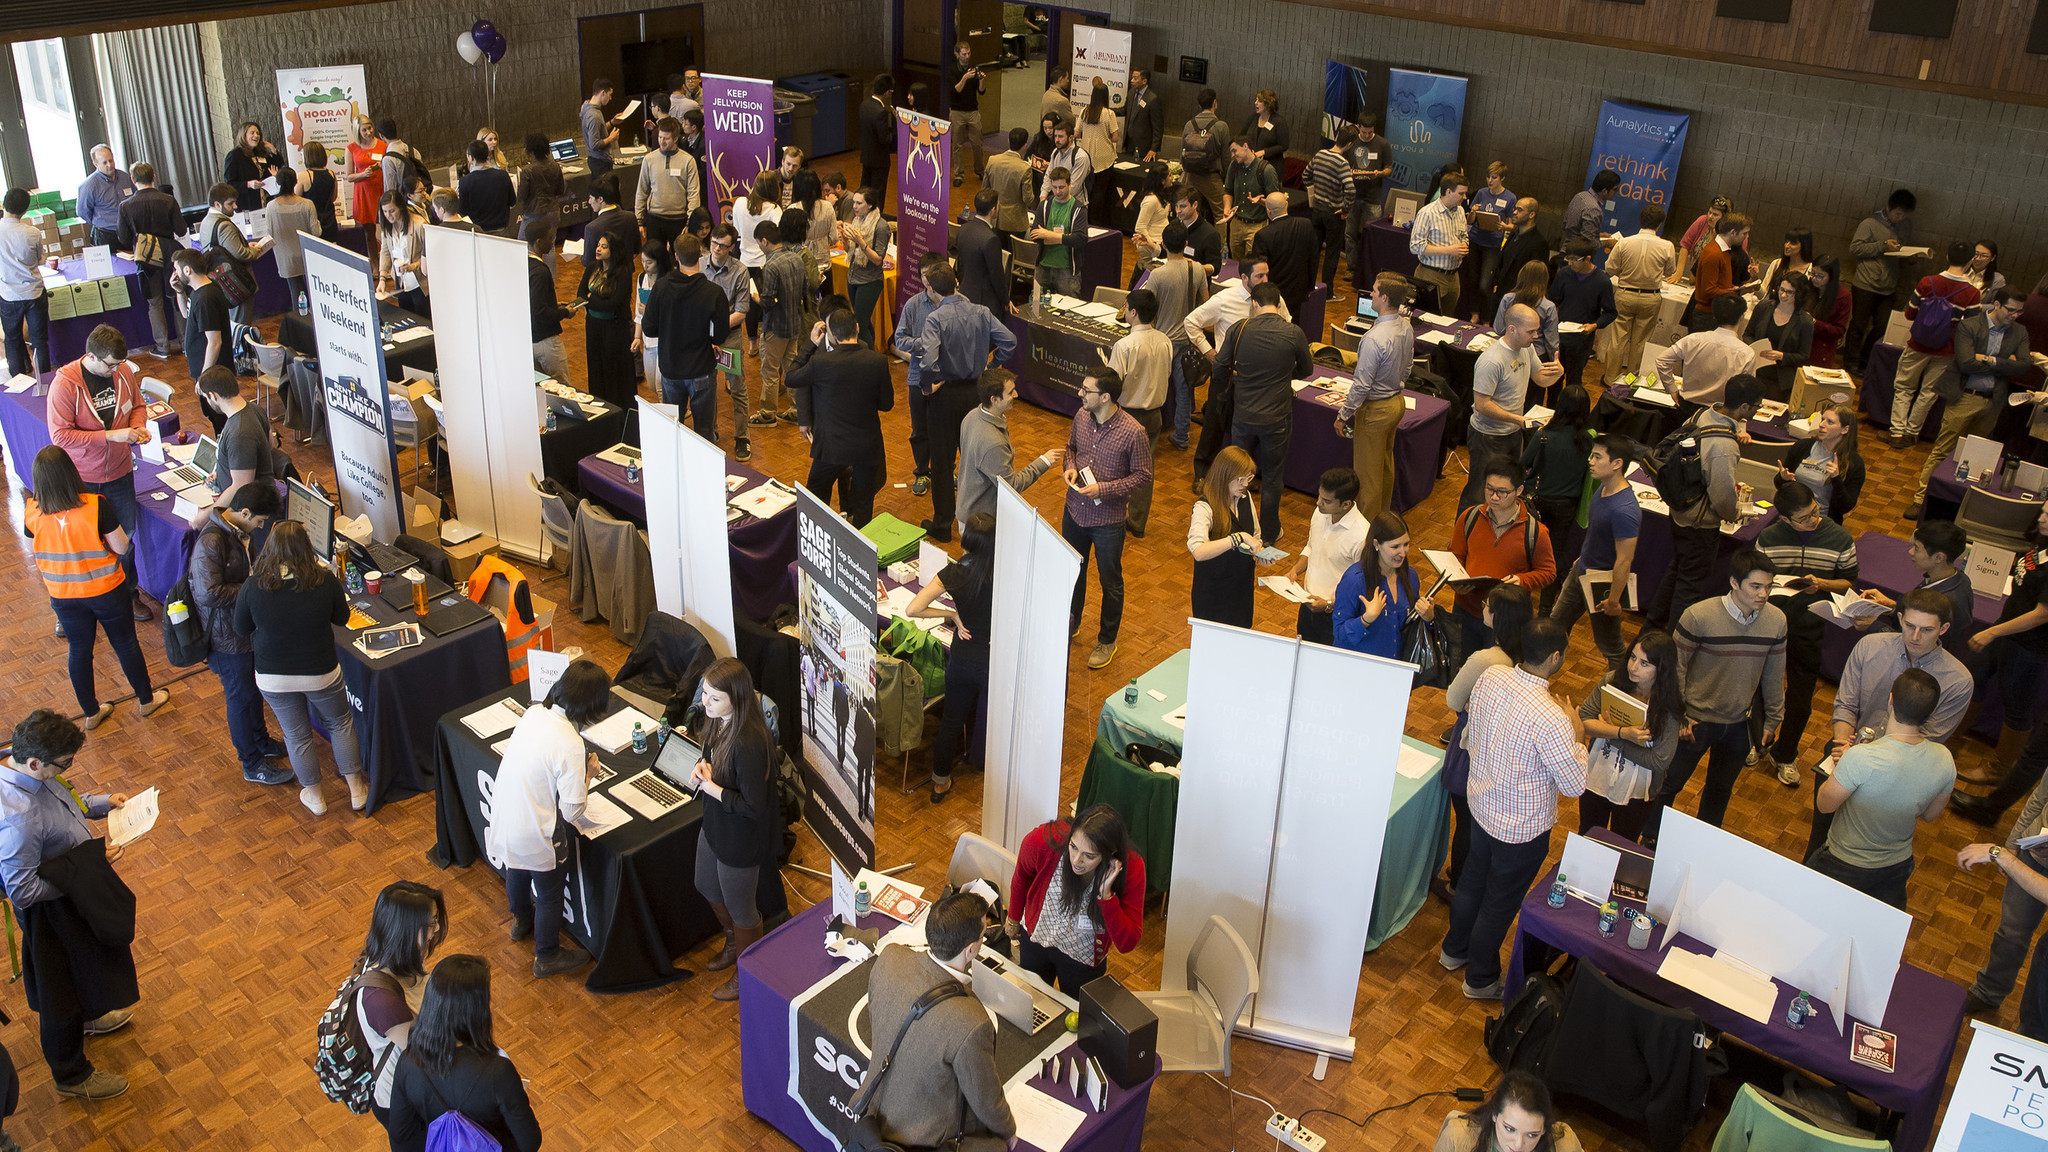 kellogg  booth students show increased interest in working